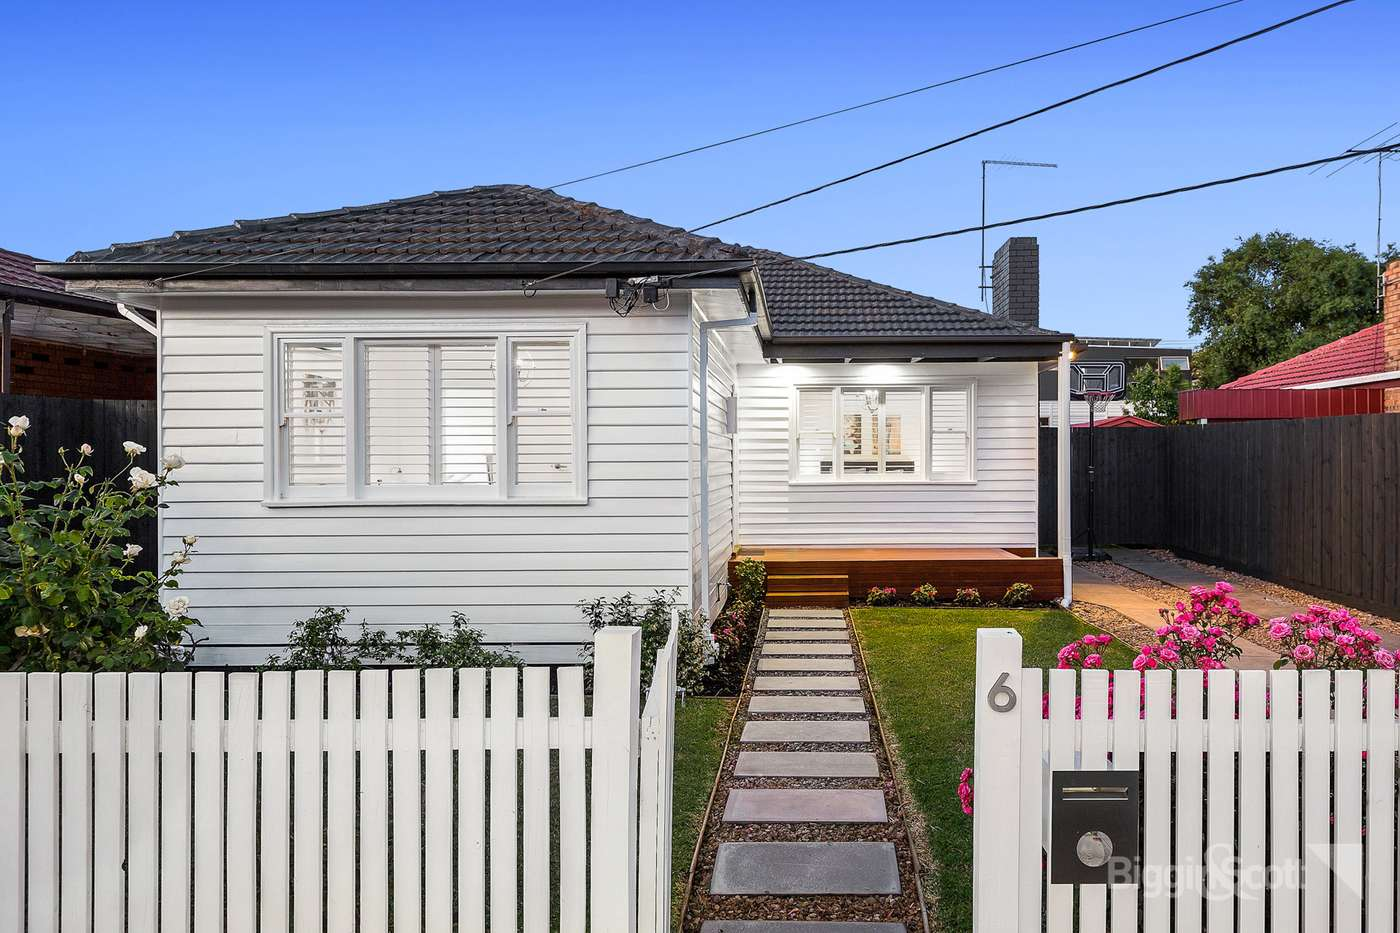 Main view of Homely house listing, 6 Kent Street, Yarraville, VIC 3013